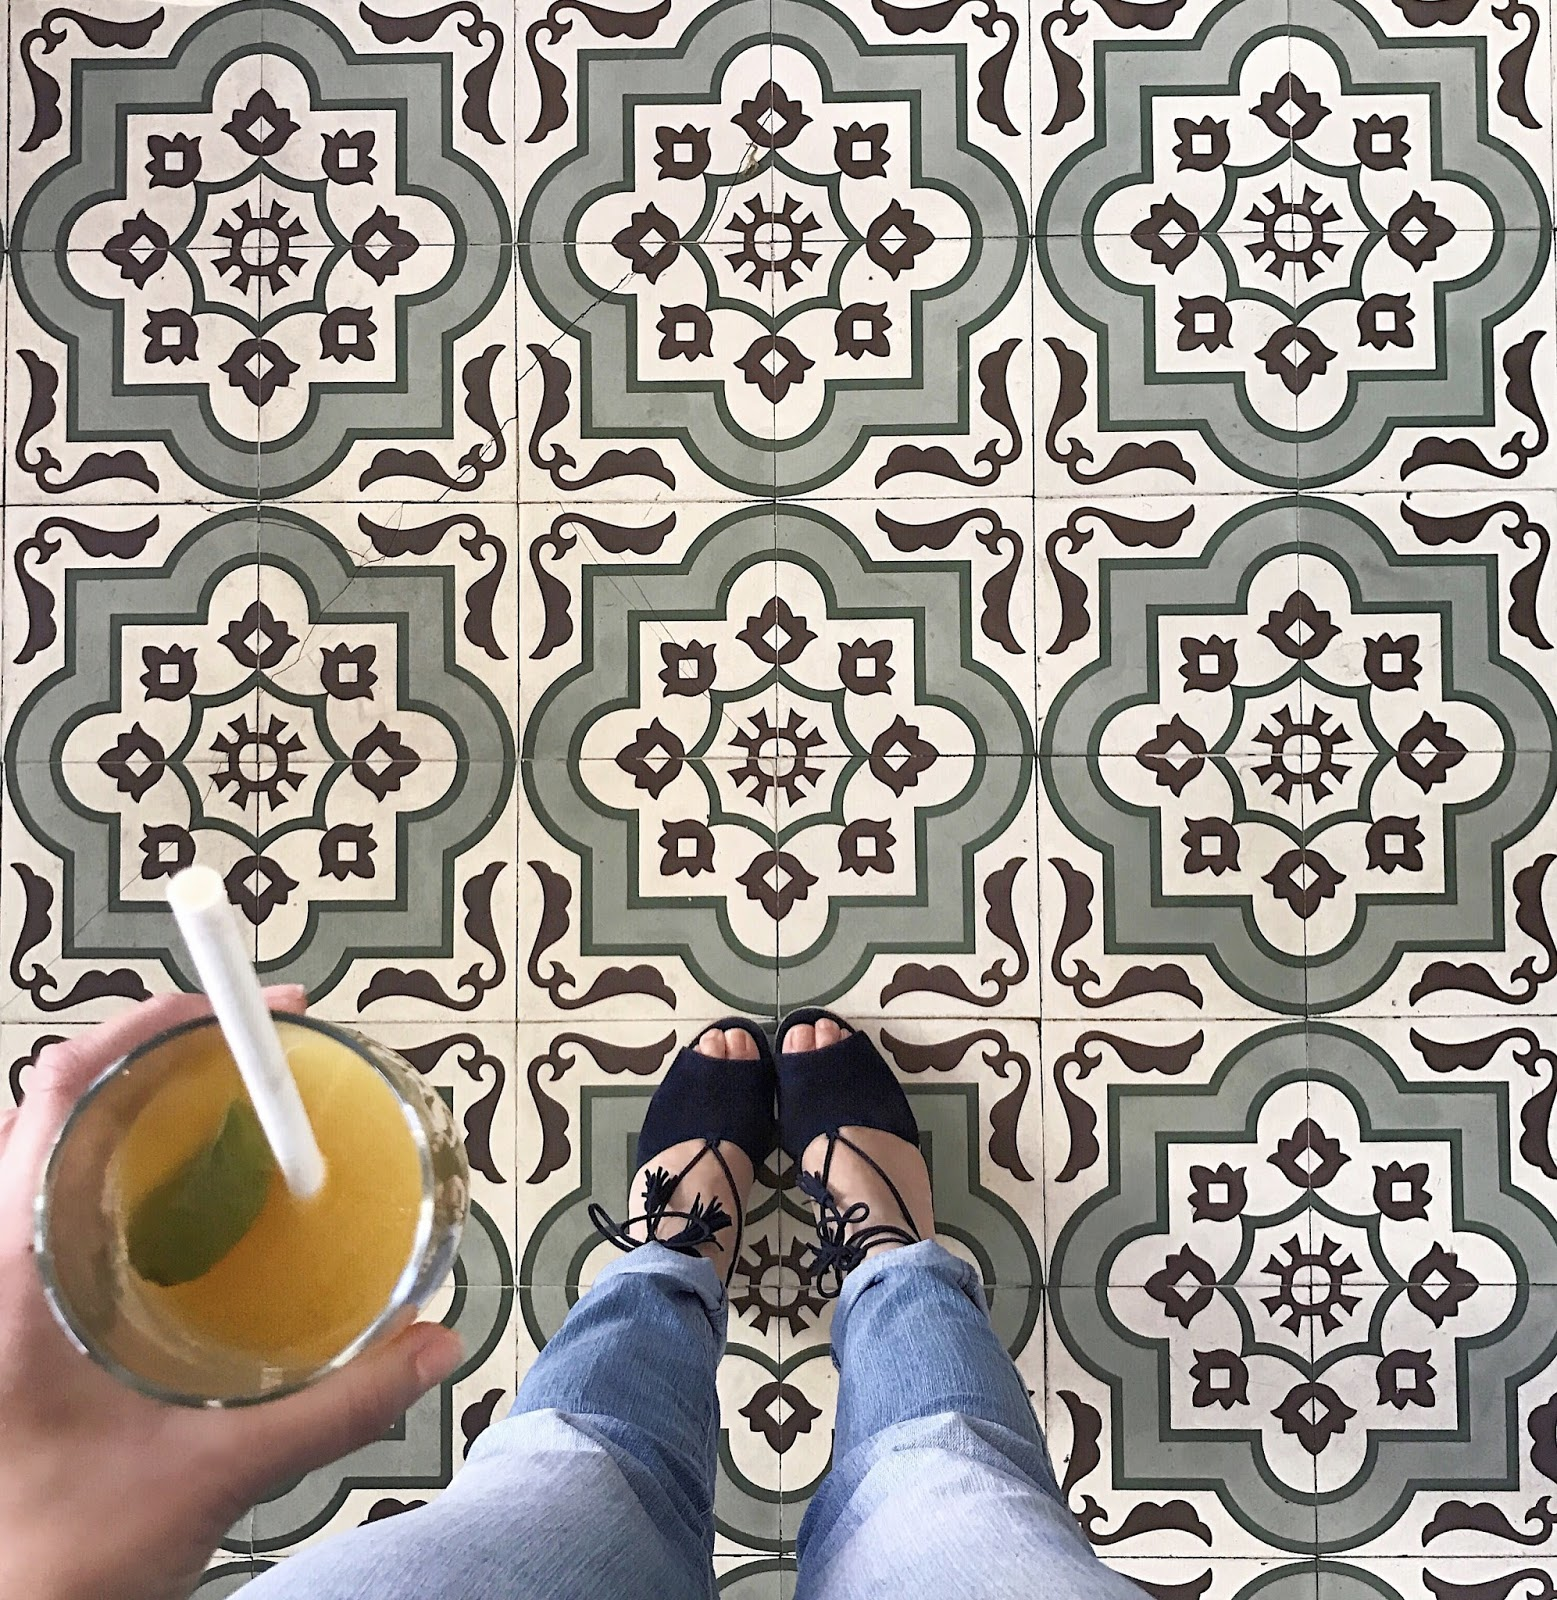 Tile envy, cute tile, cafe gratitude tile, i have something with floors